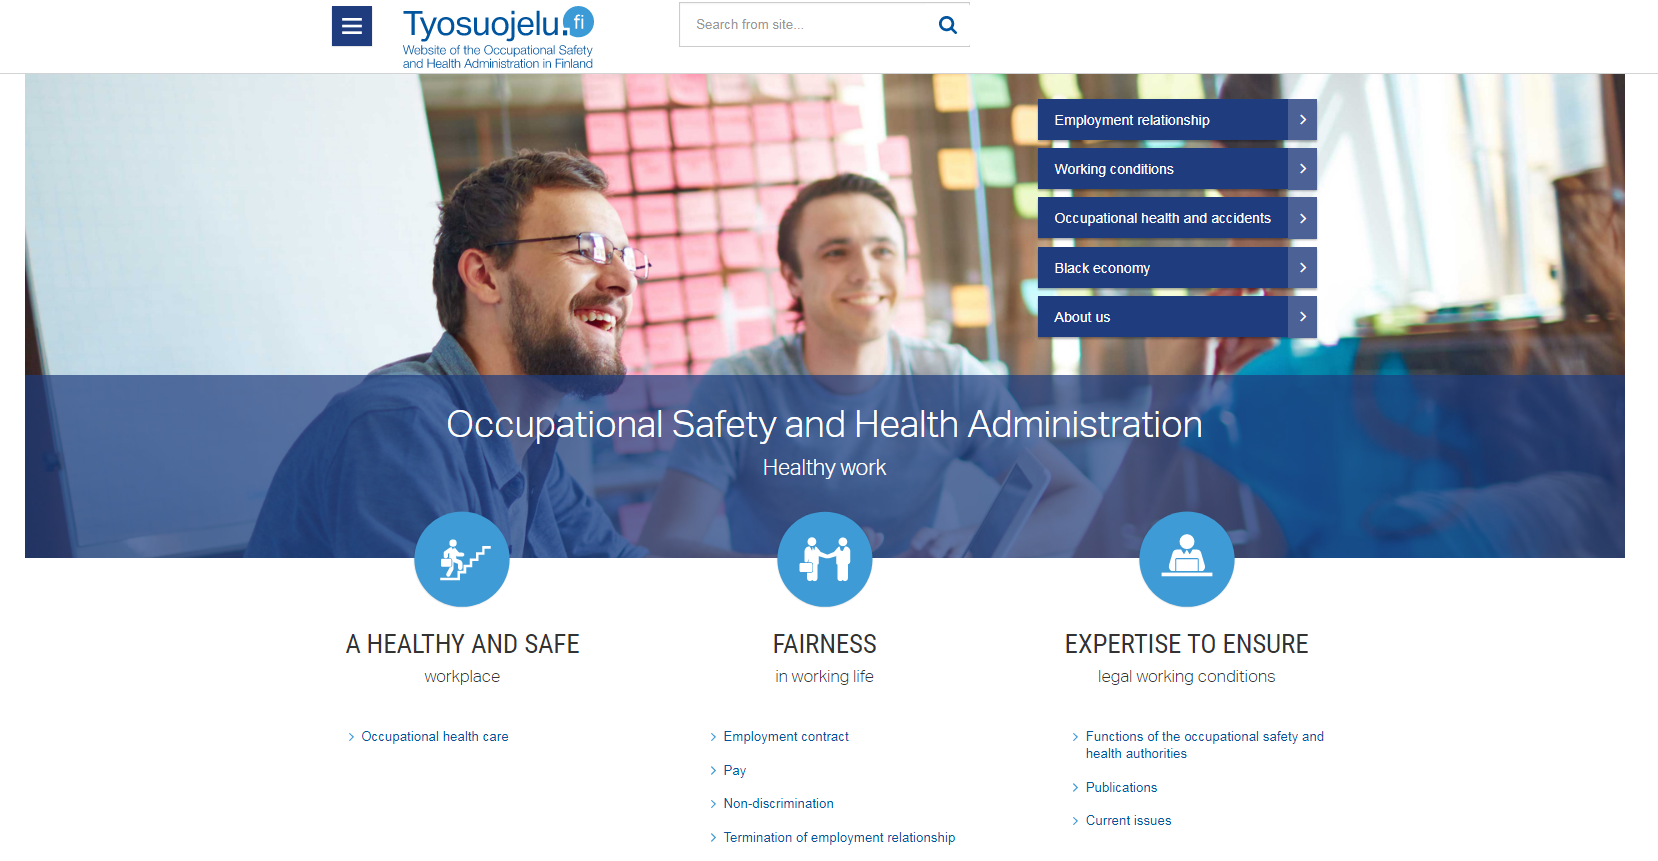 Occupational Safety and Health Administration Finland